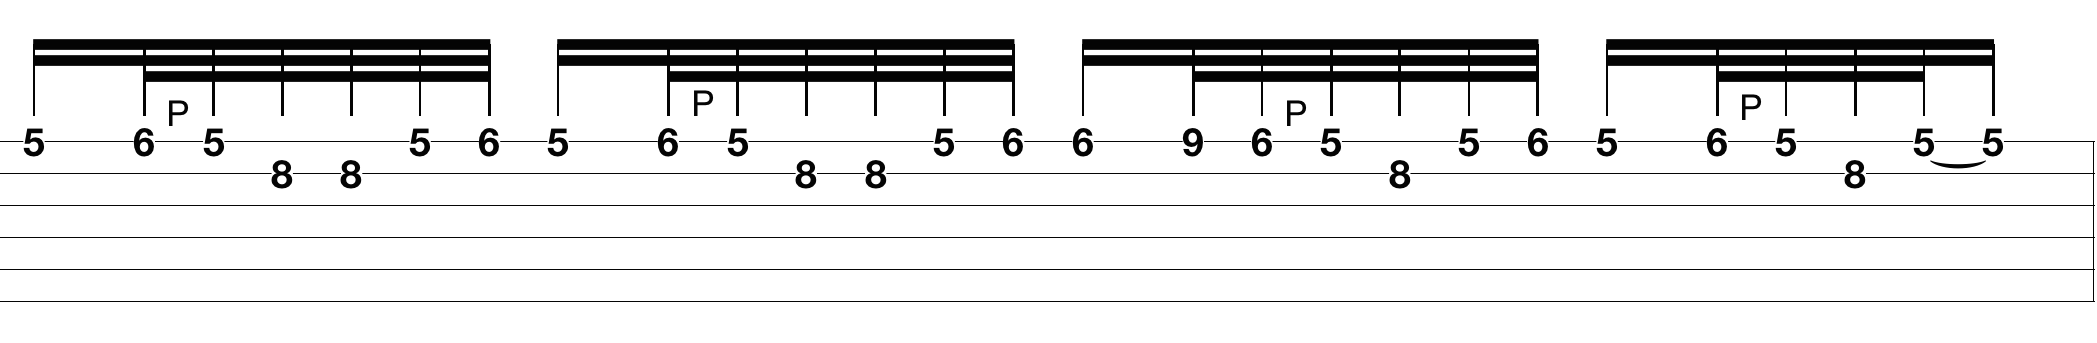 spanish-guitar-licks_2.png